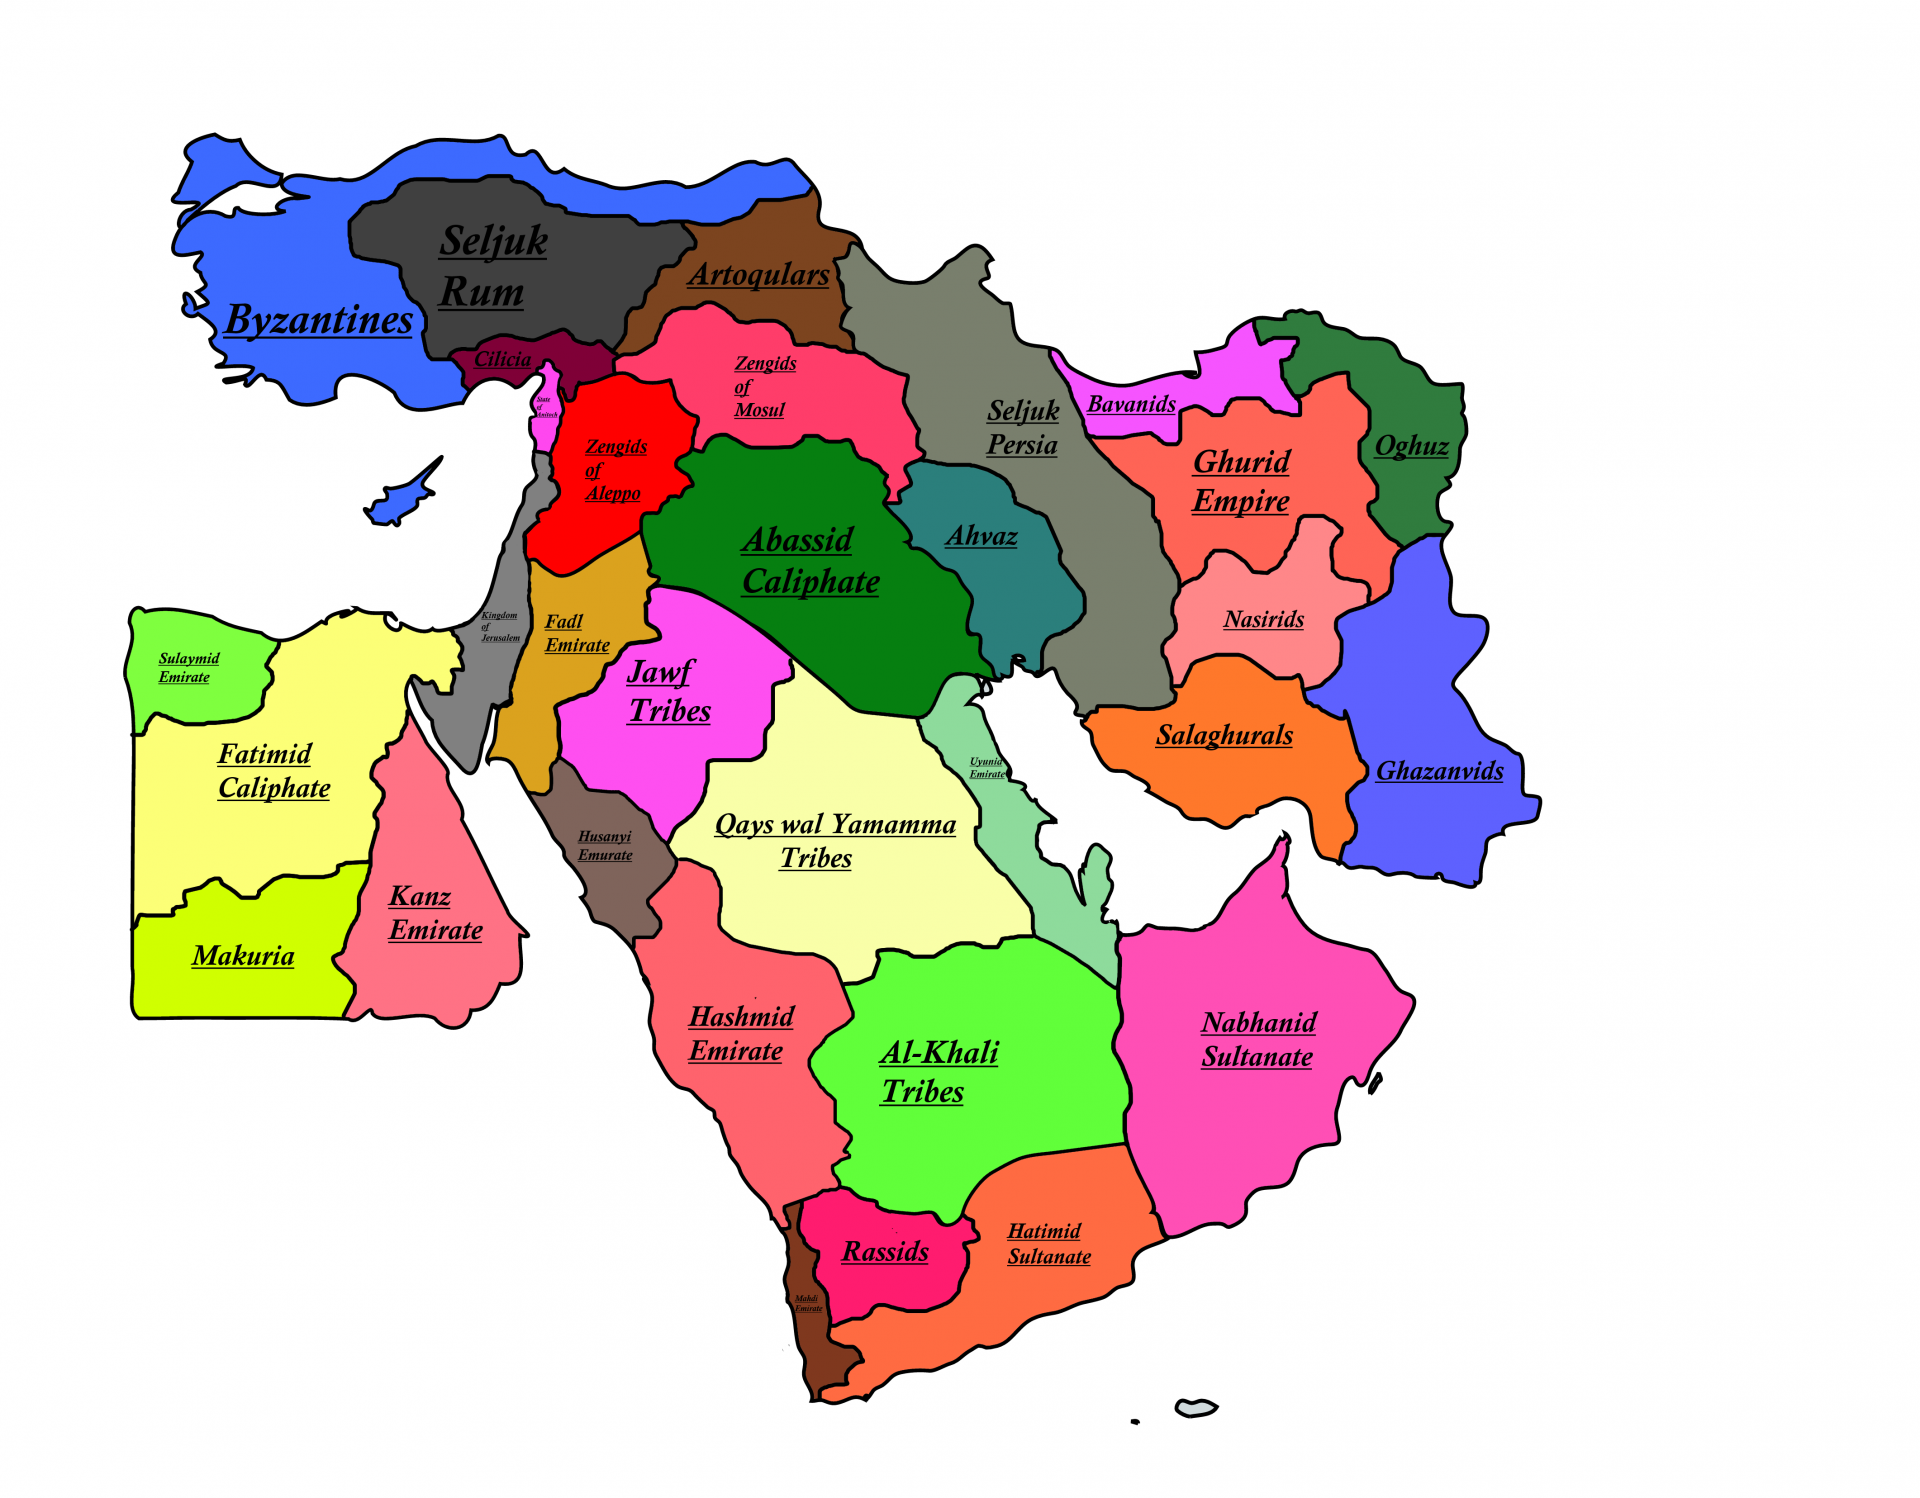 How Many Countries Are There In The Middle East Today: List, Population, Facts and Figure?